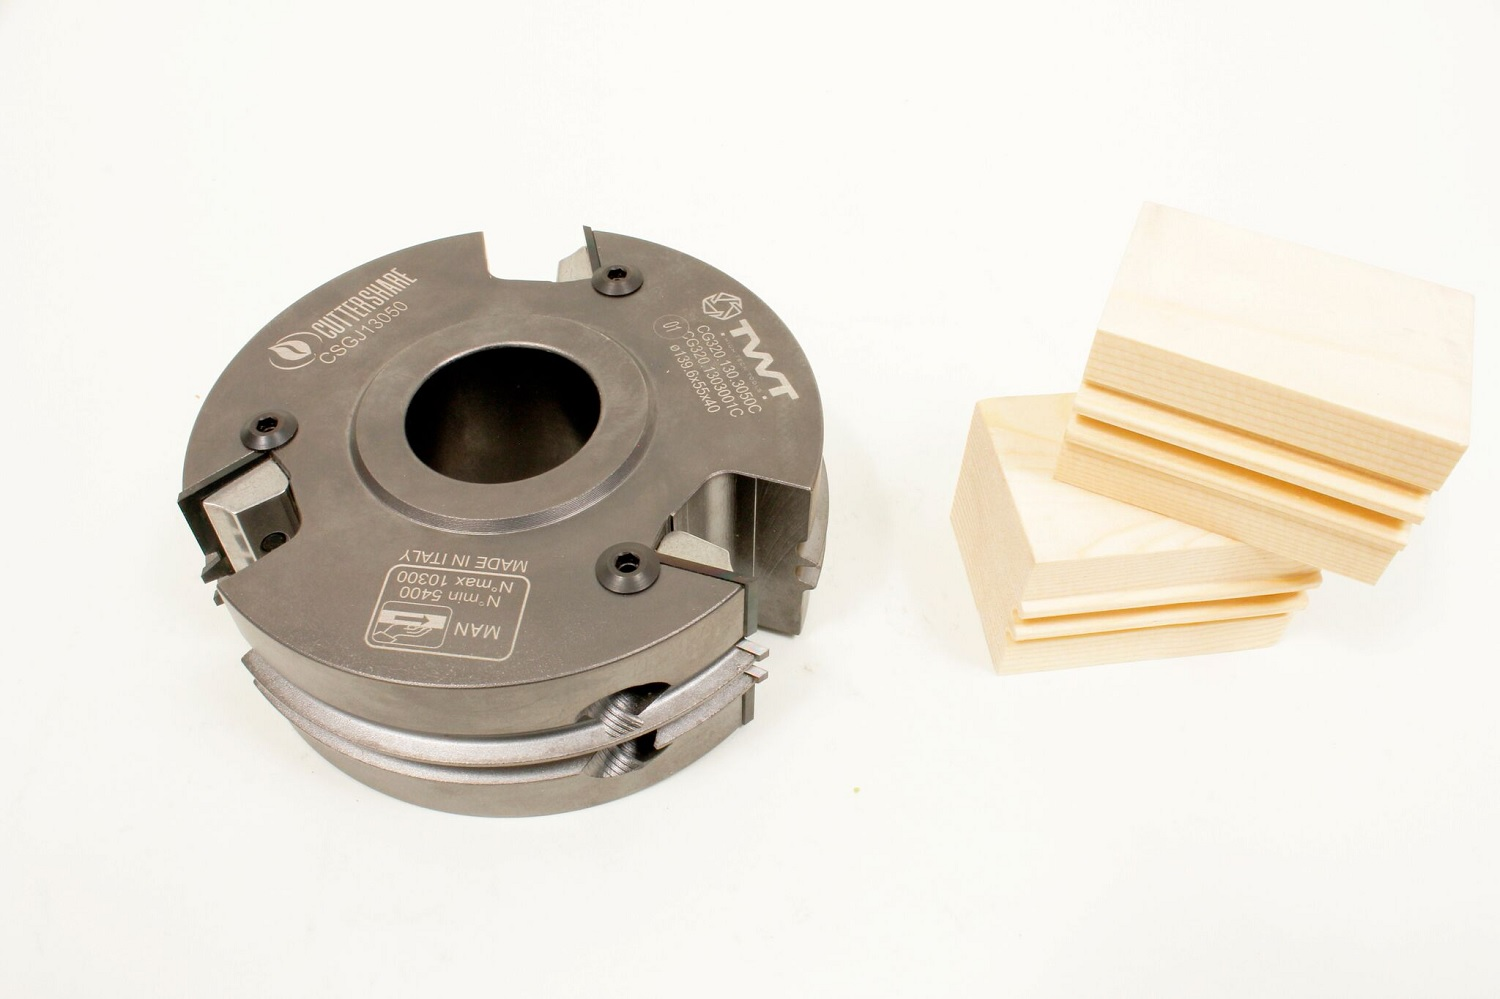 Deep Groove Glue Joint Cutter with Wood Sample